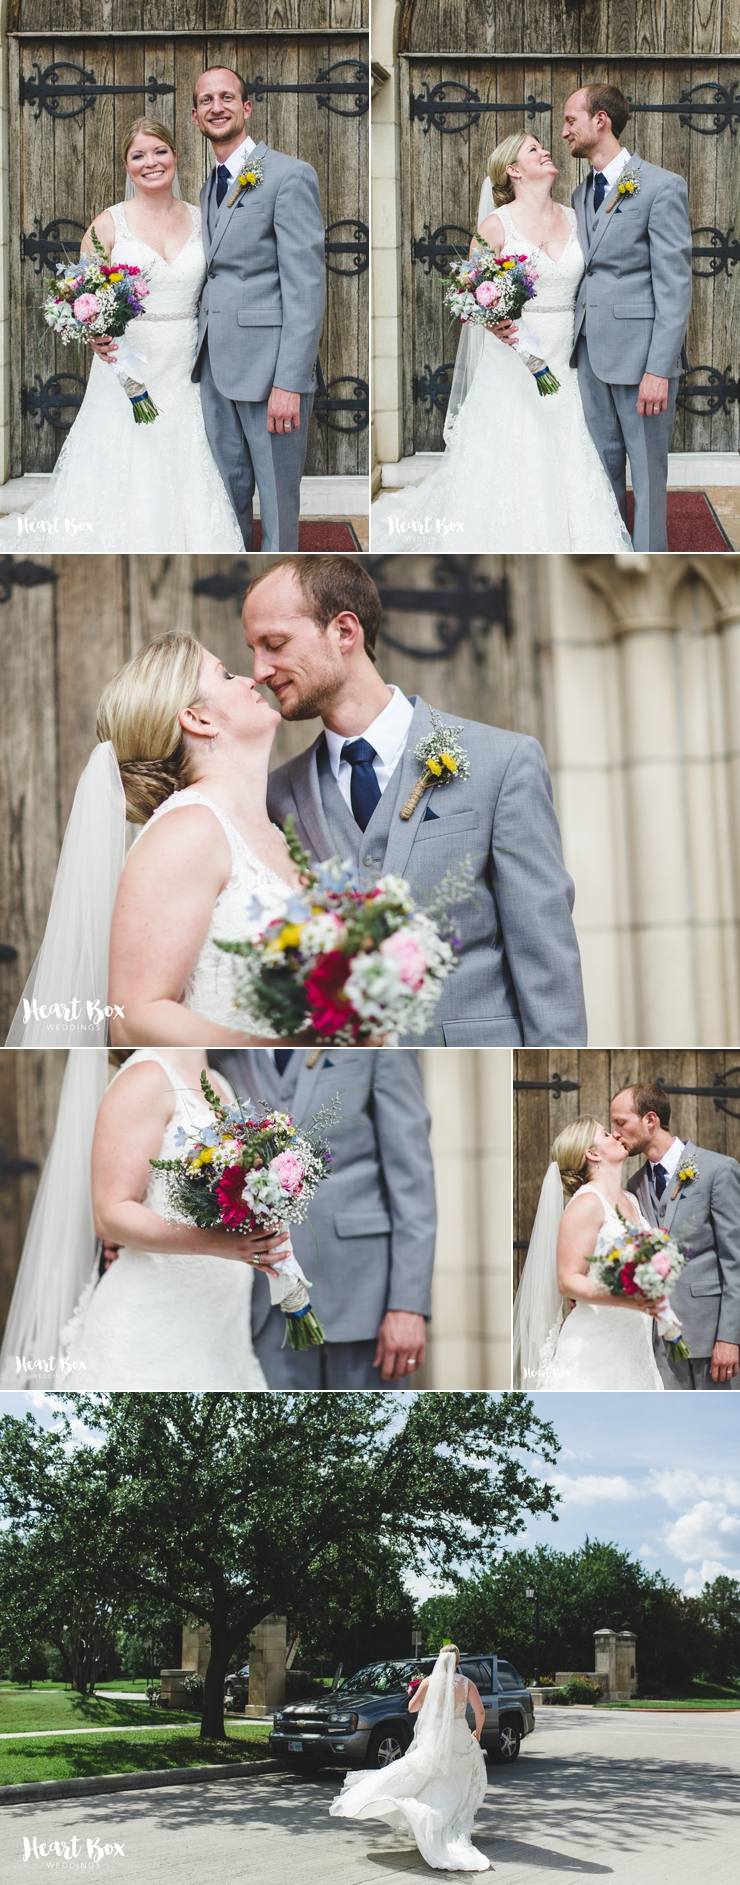 Louisa + Jon Wedding Blog Collages 8.jpg